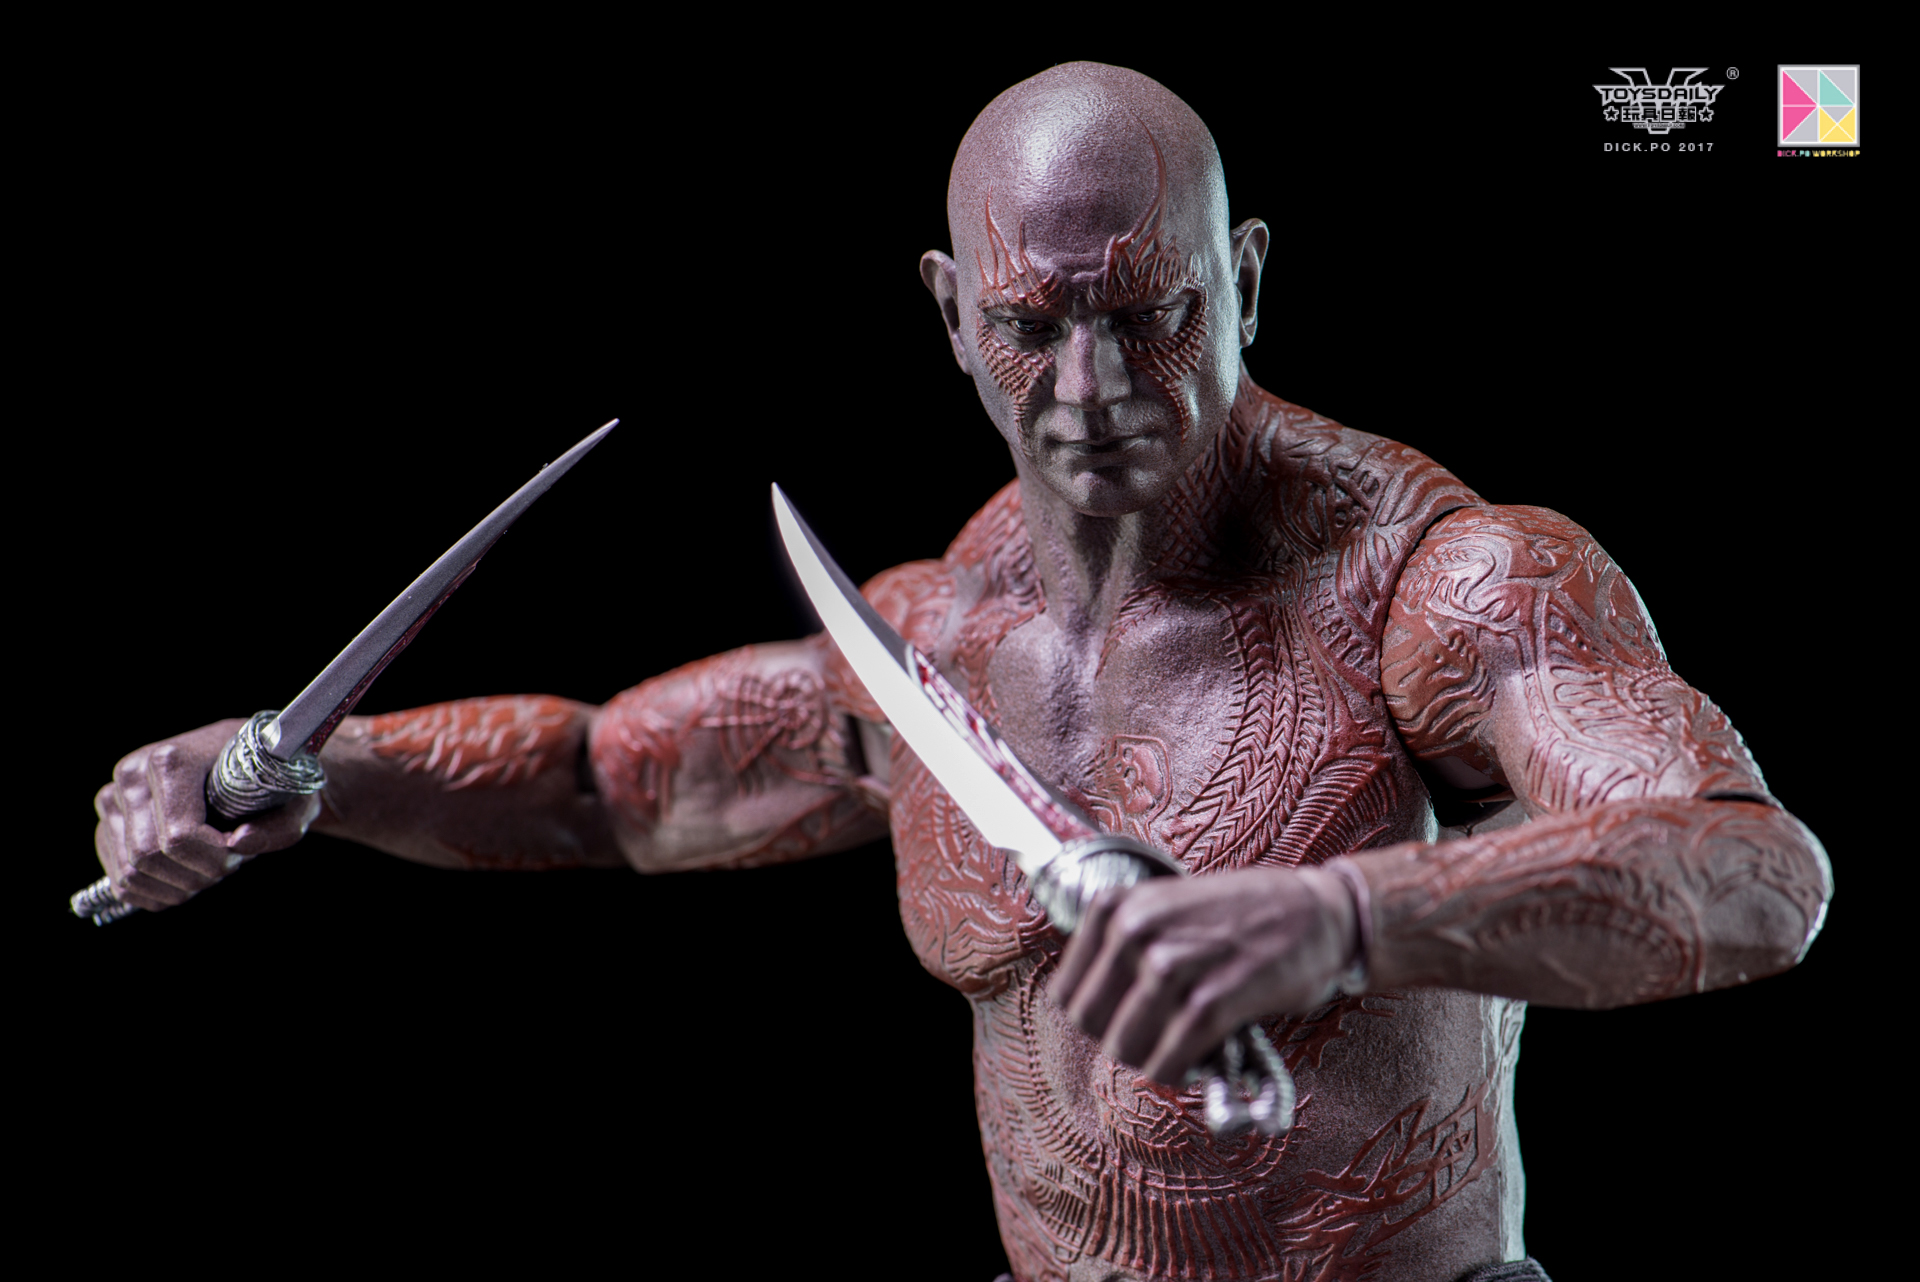 toysdaily_dick.po_Hottoys_DARX-42.jpg